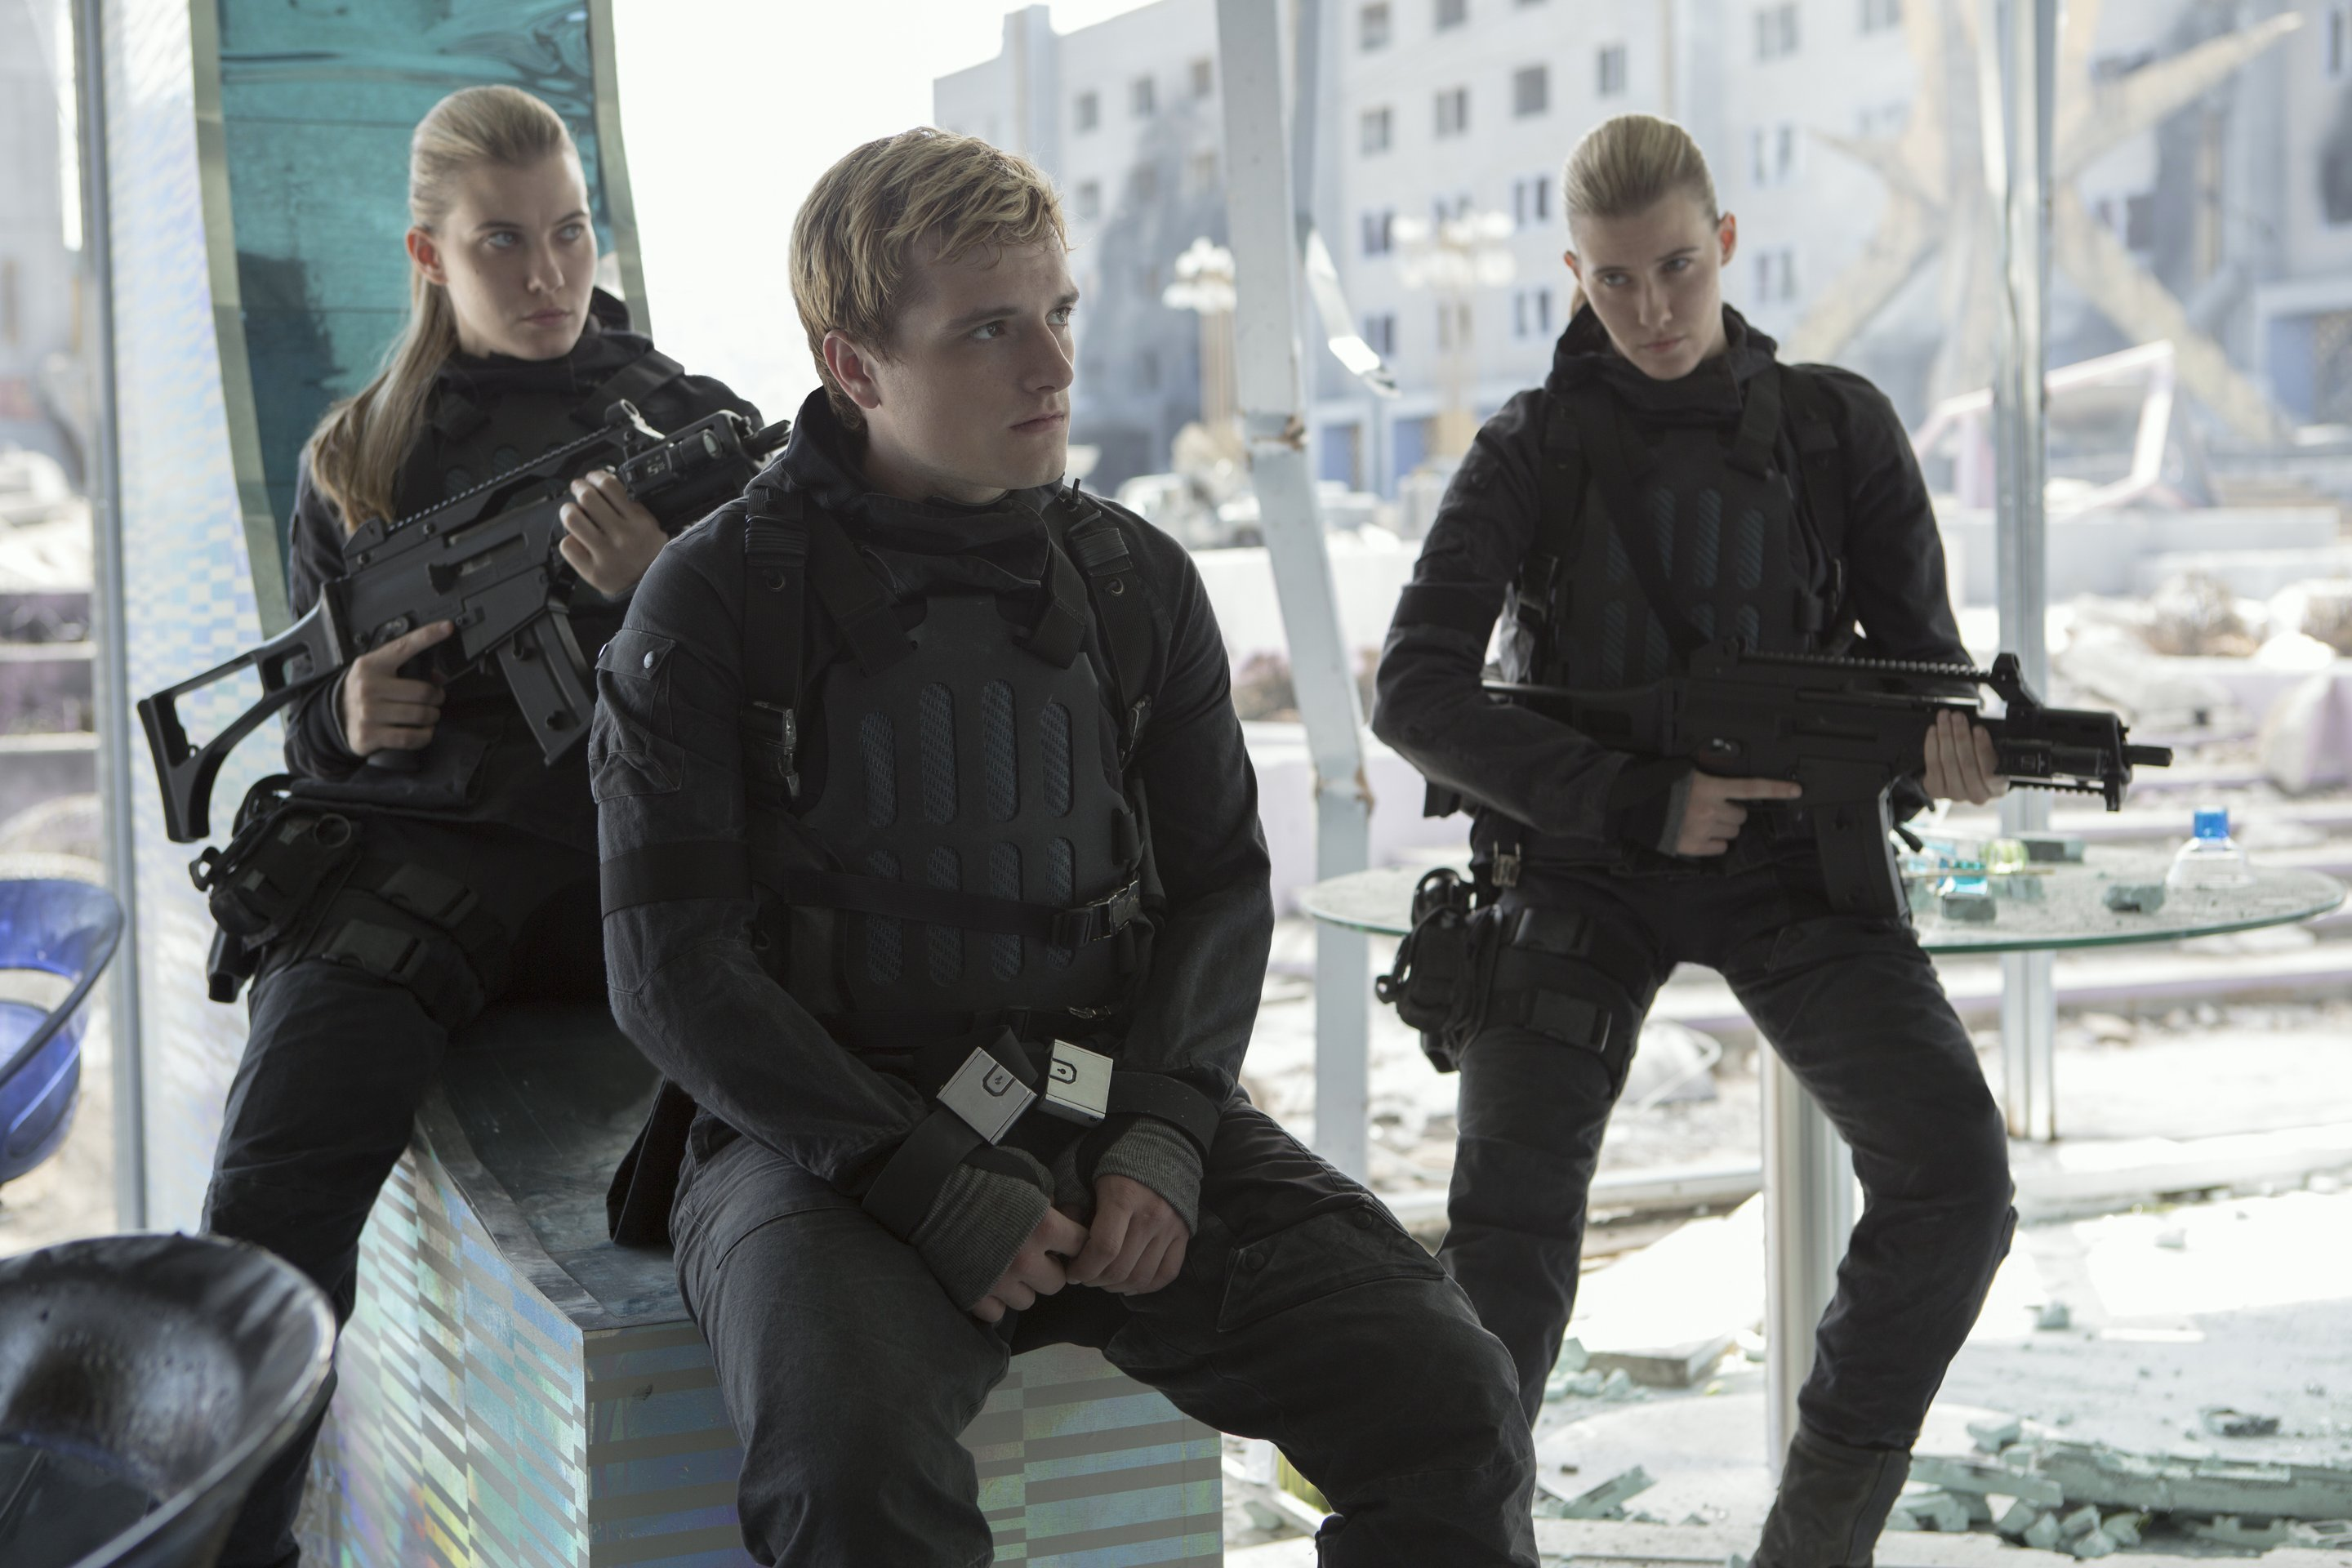 Die tribute von panem mockingjay teil 2 film 2015 trailer kritik for Die tribute von panem 2